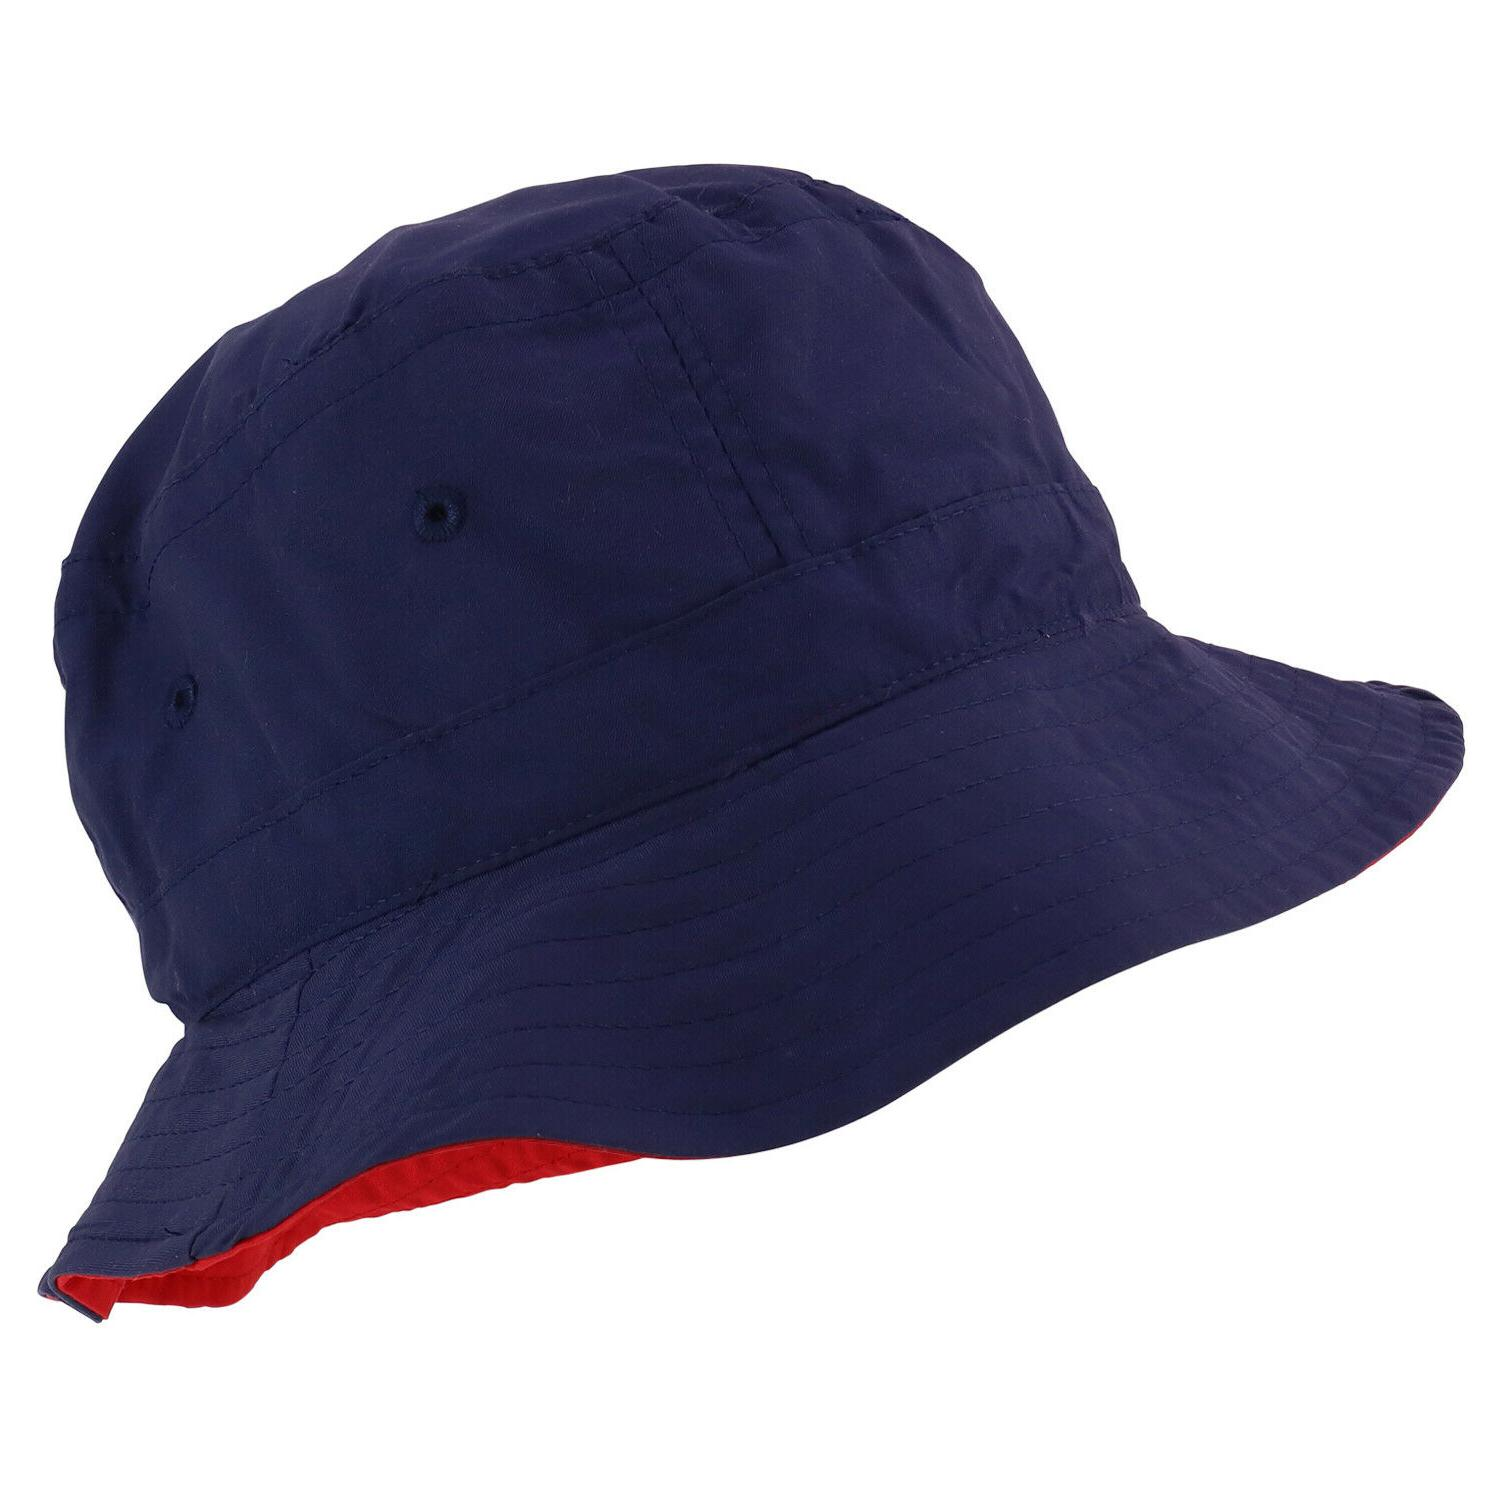 quality reversible polyester microfiber bucket hat free